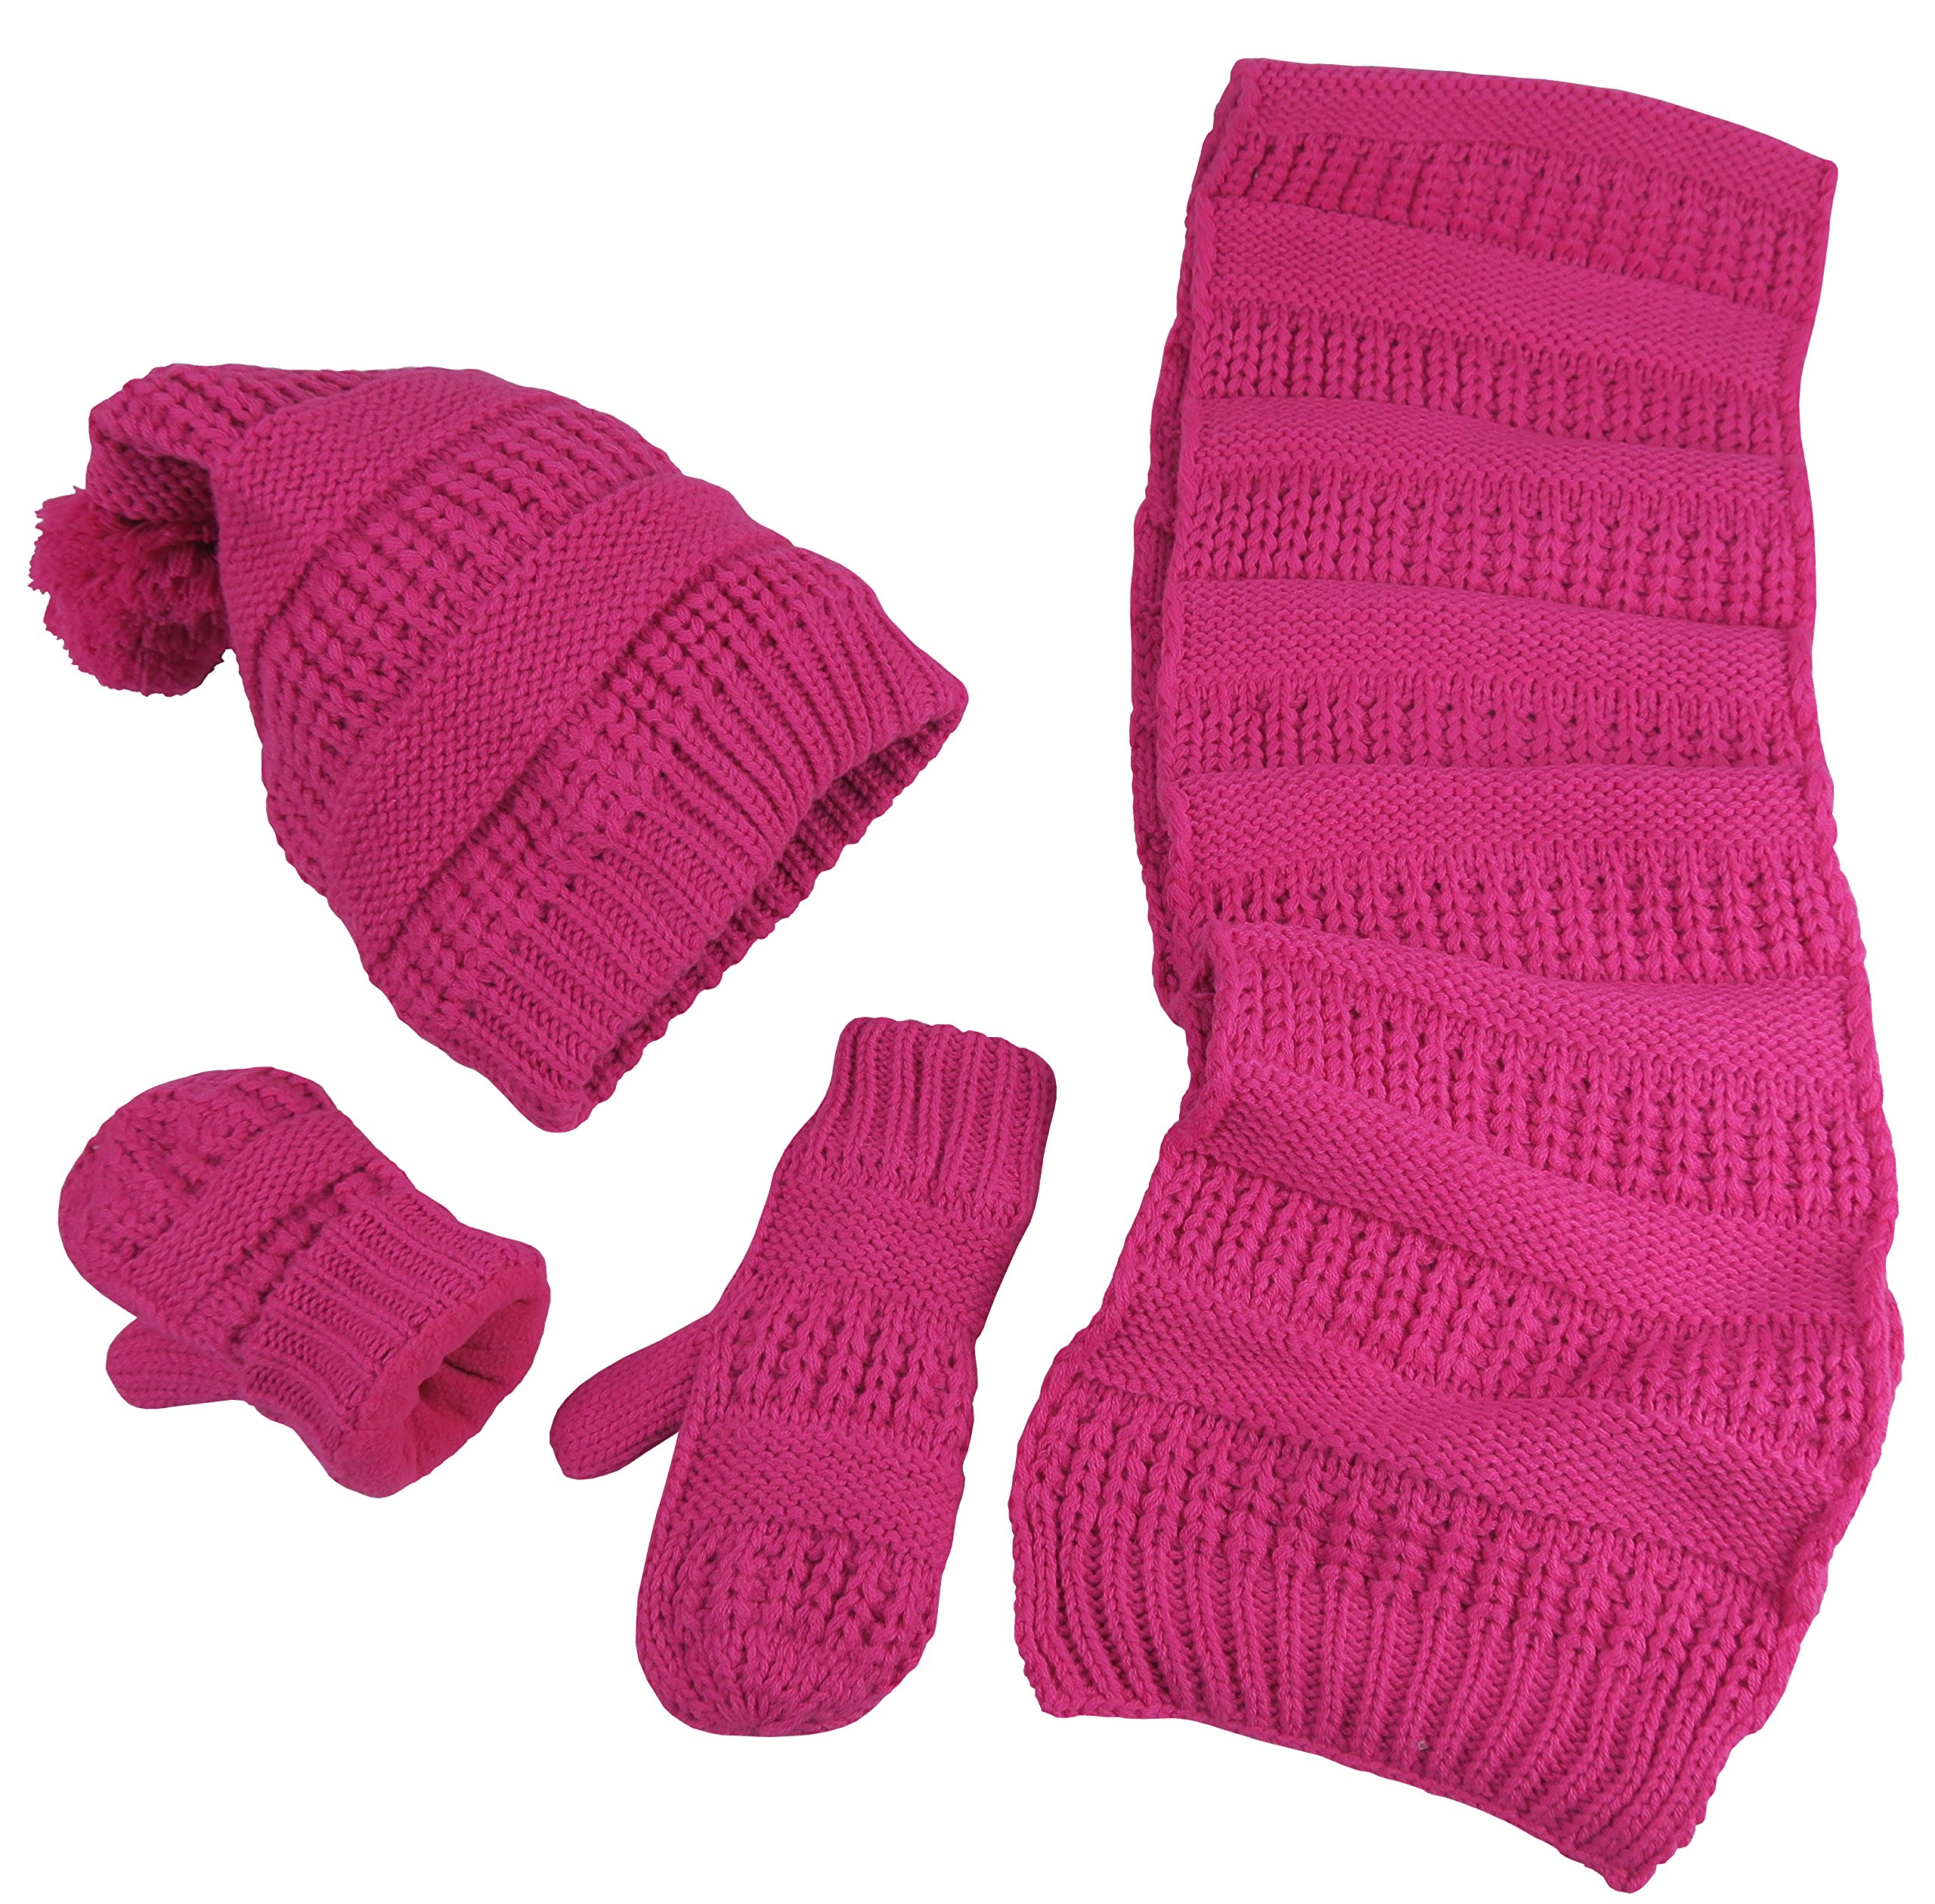 N'Ice Caps Little Girls and Infants Solid Cable Knit Hat/Scarf/Mitten Accessory Set (Fuchsia Solid, 4-6 Years)